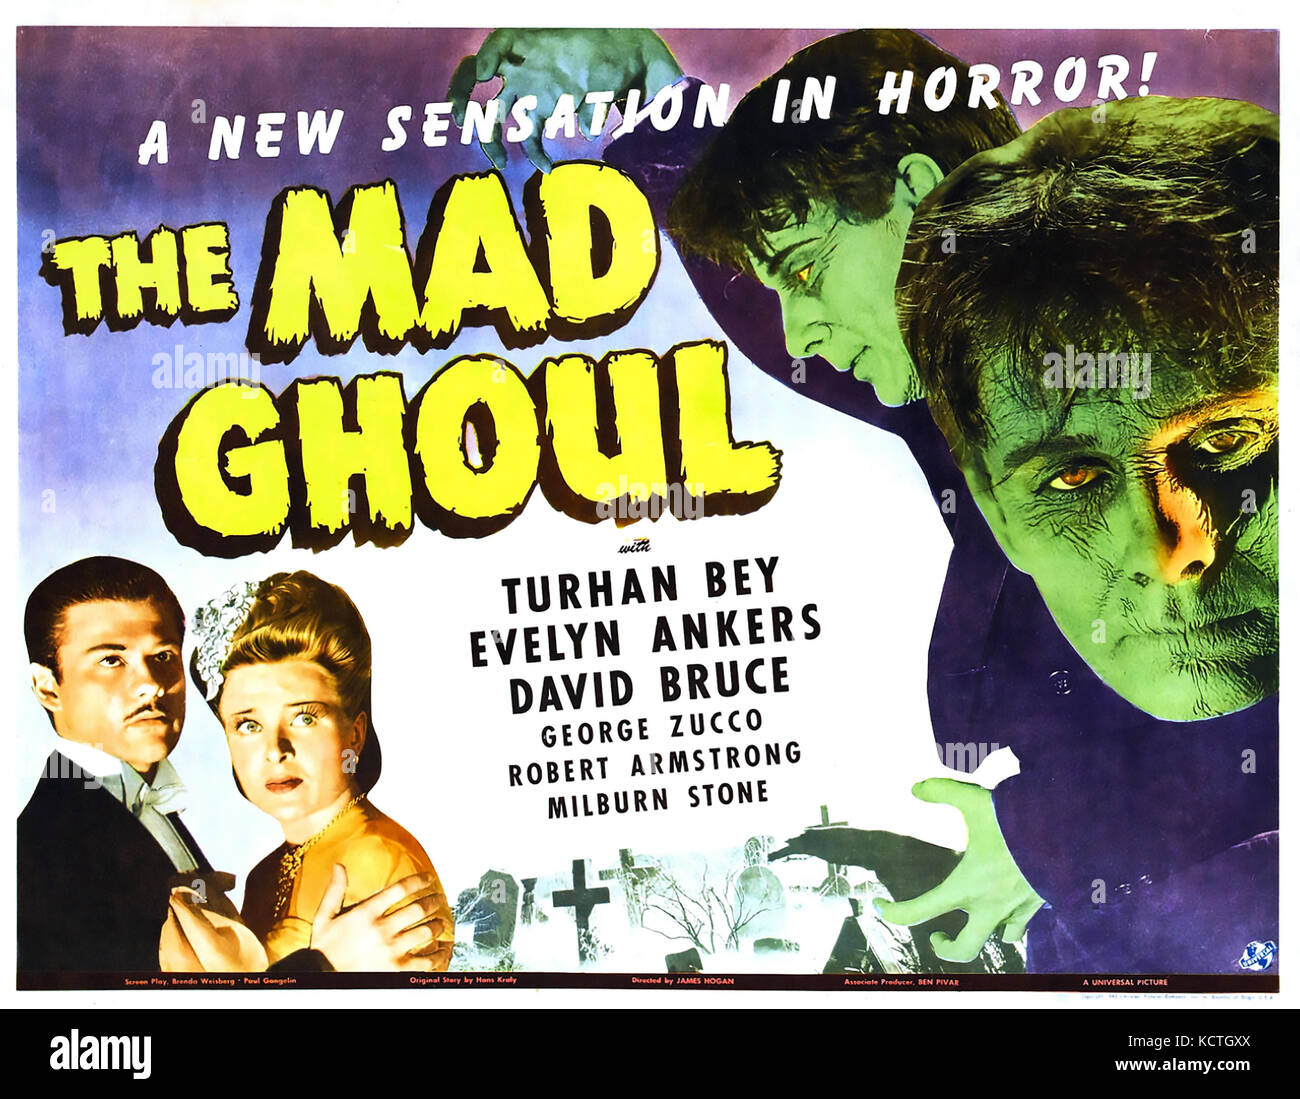 The mad ghoul 1943 Universal Pictures film sci-fi Photo Stock